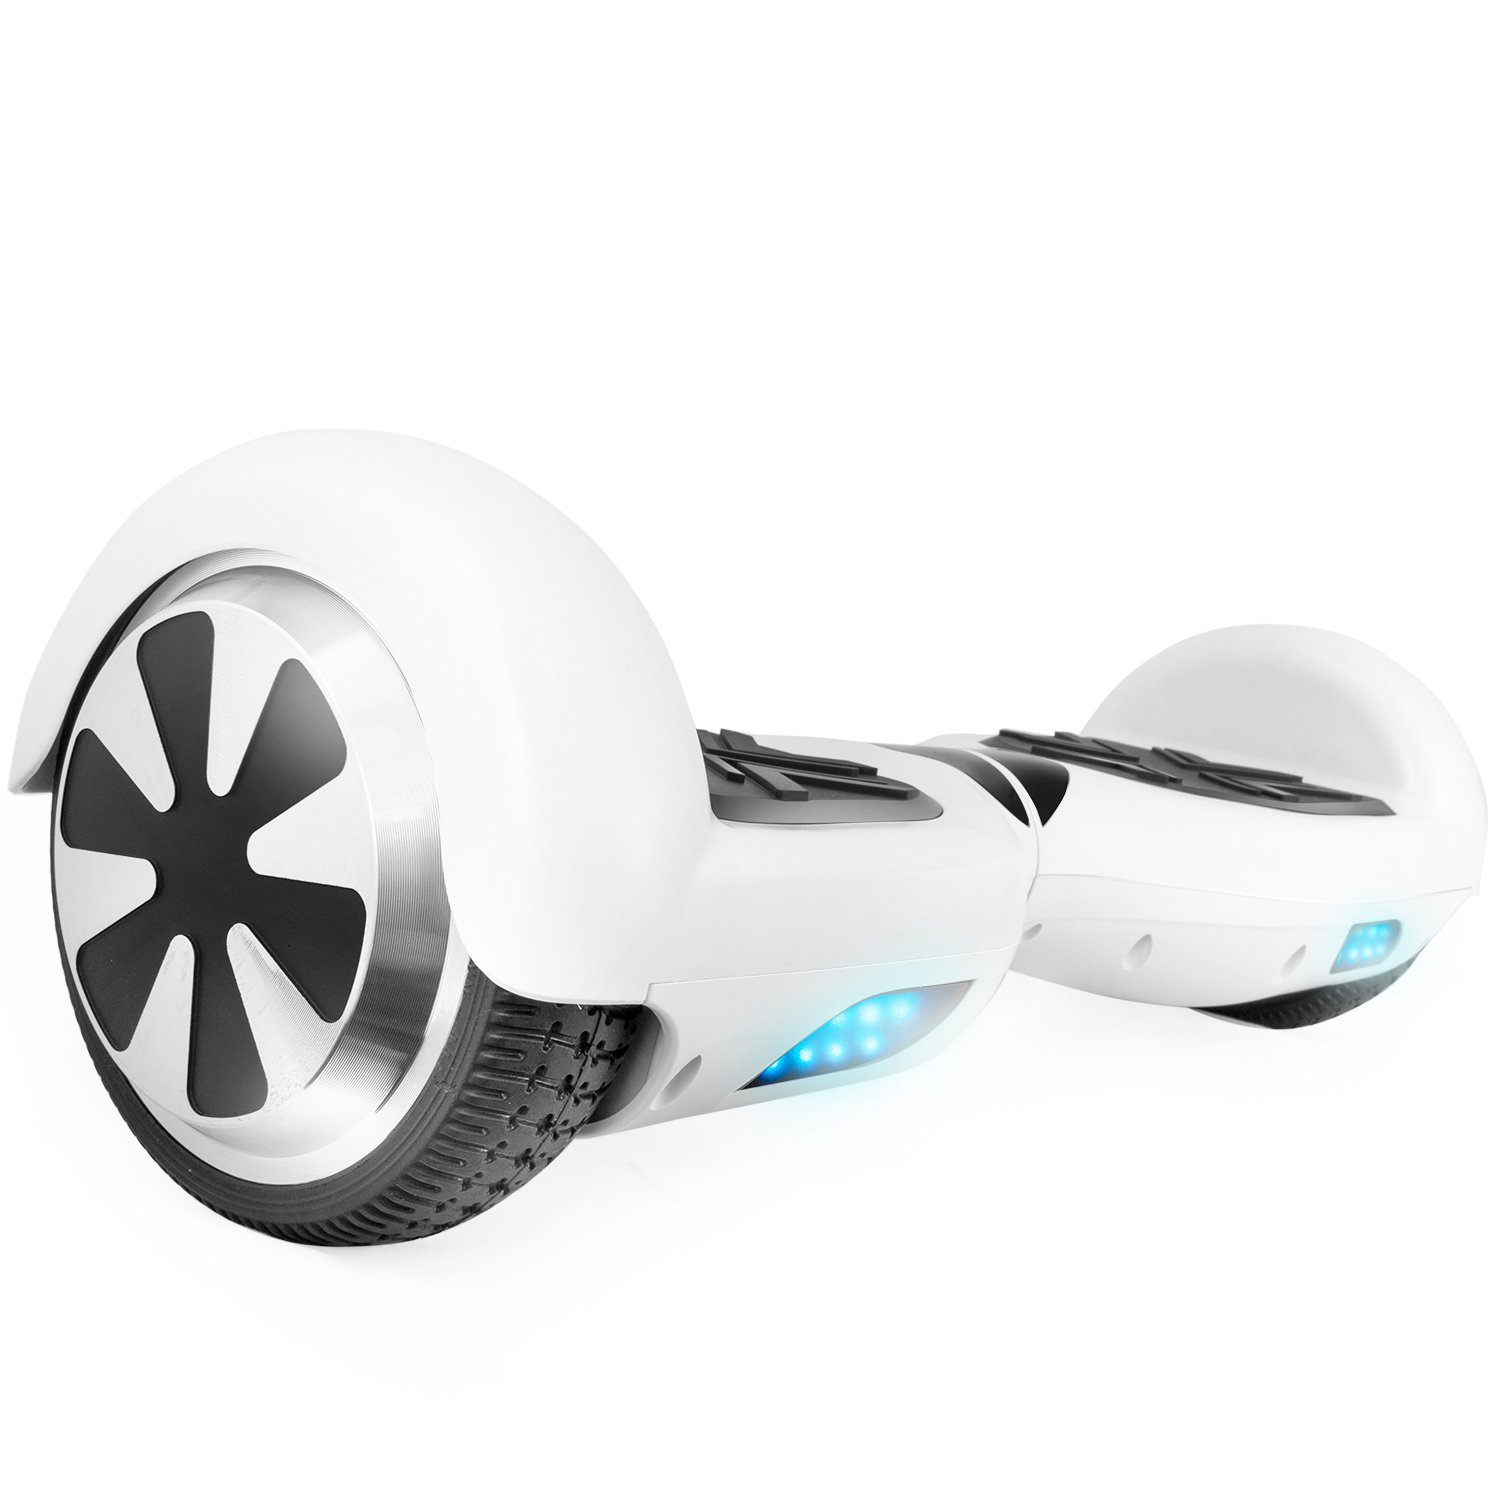 "T6SE White Hoverboard with 6.5"" Wheels Self Balancing UL2272 Certified - HoverBoard 4sale"